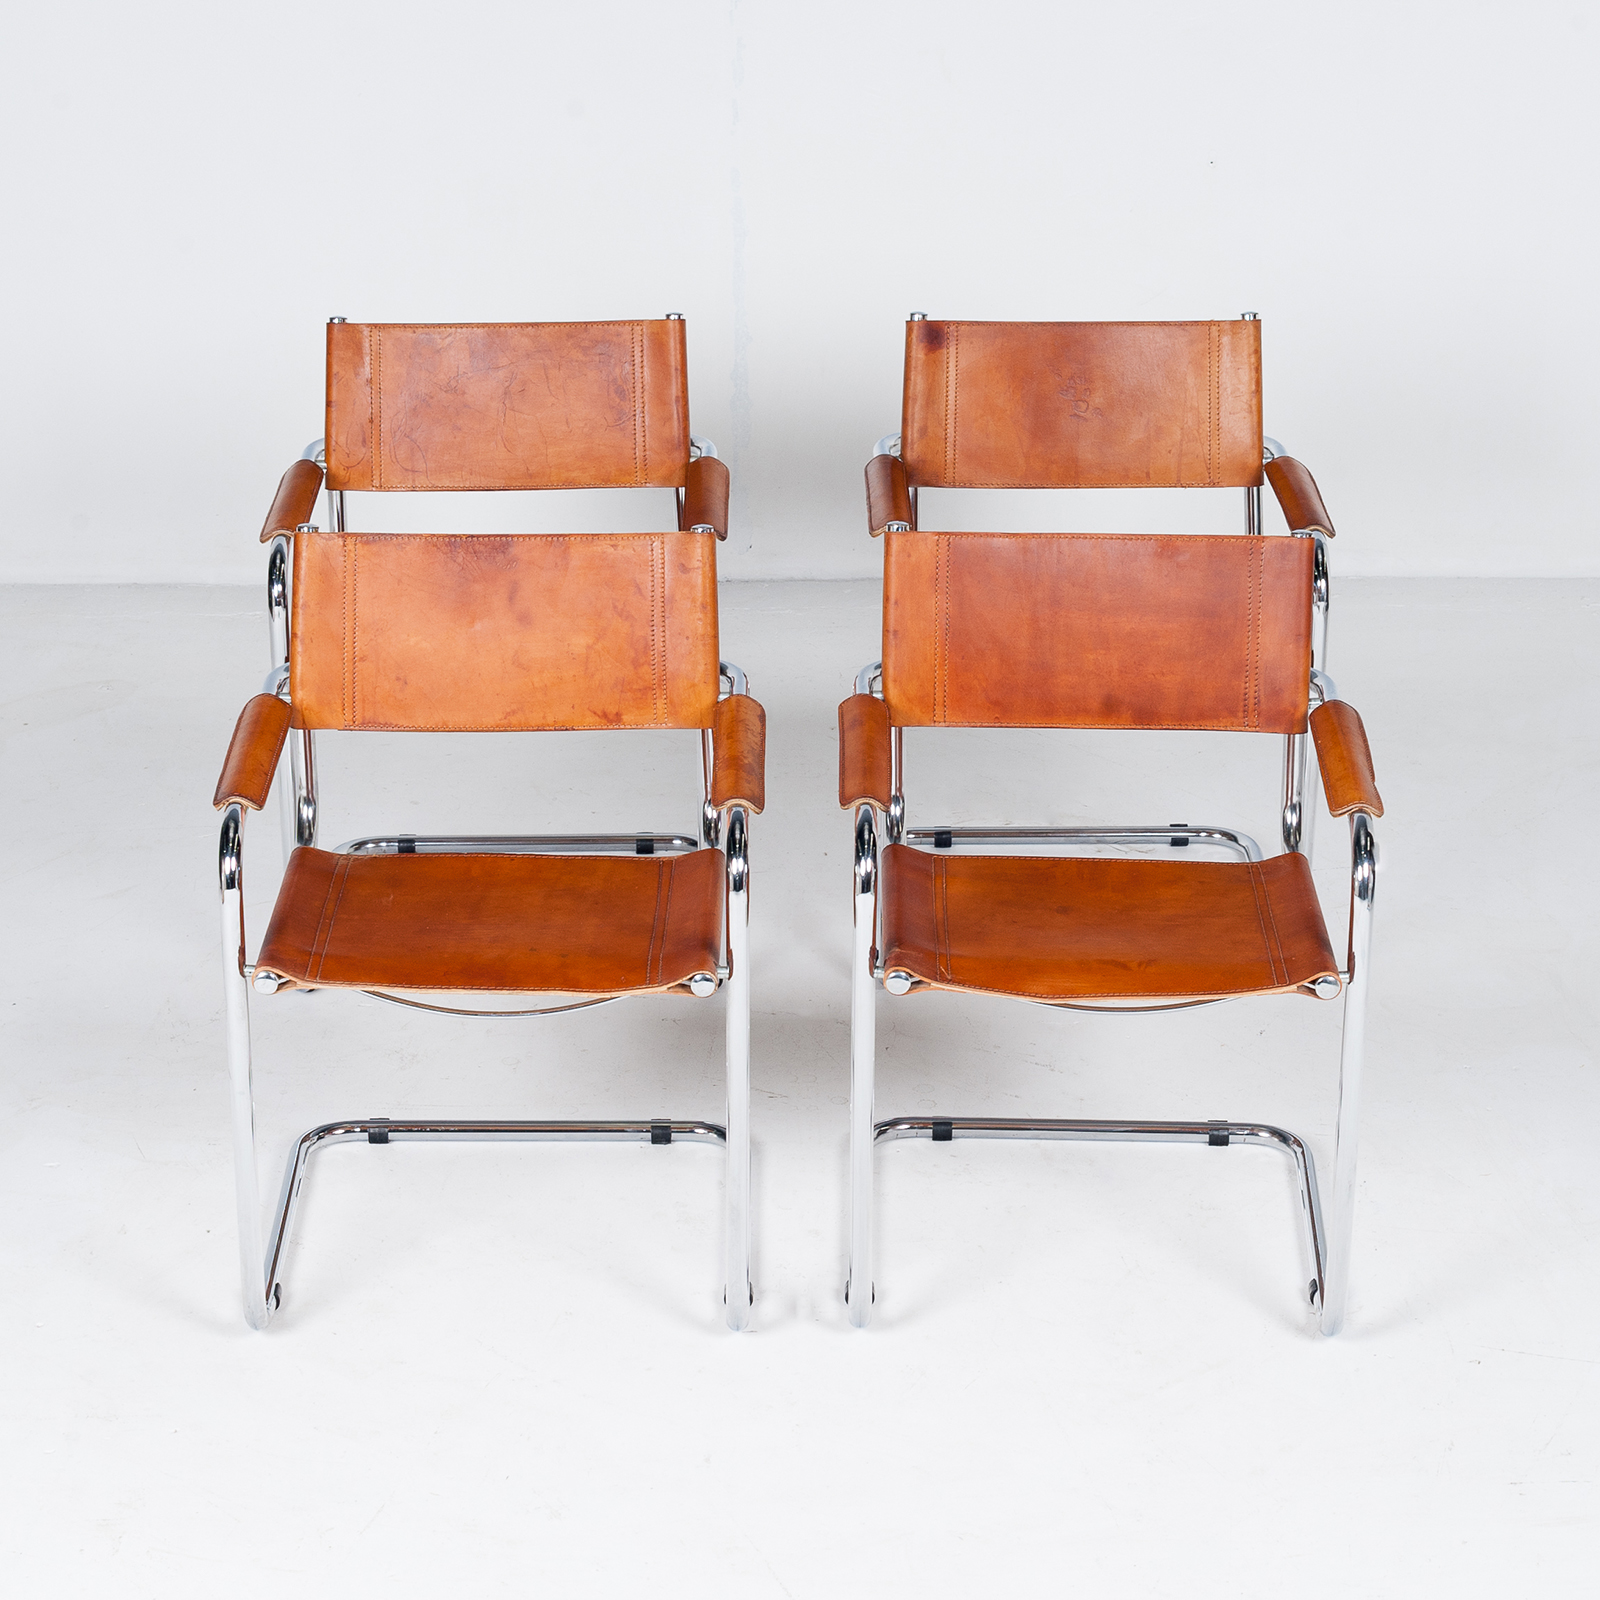 Set Of 4 Model S34 Cantilever Chairs In Tan Leather By Mart Stam For Thonet, 1980s, Germany29